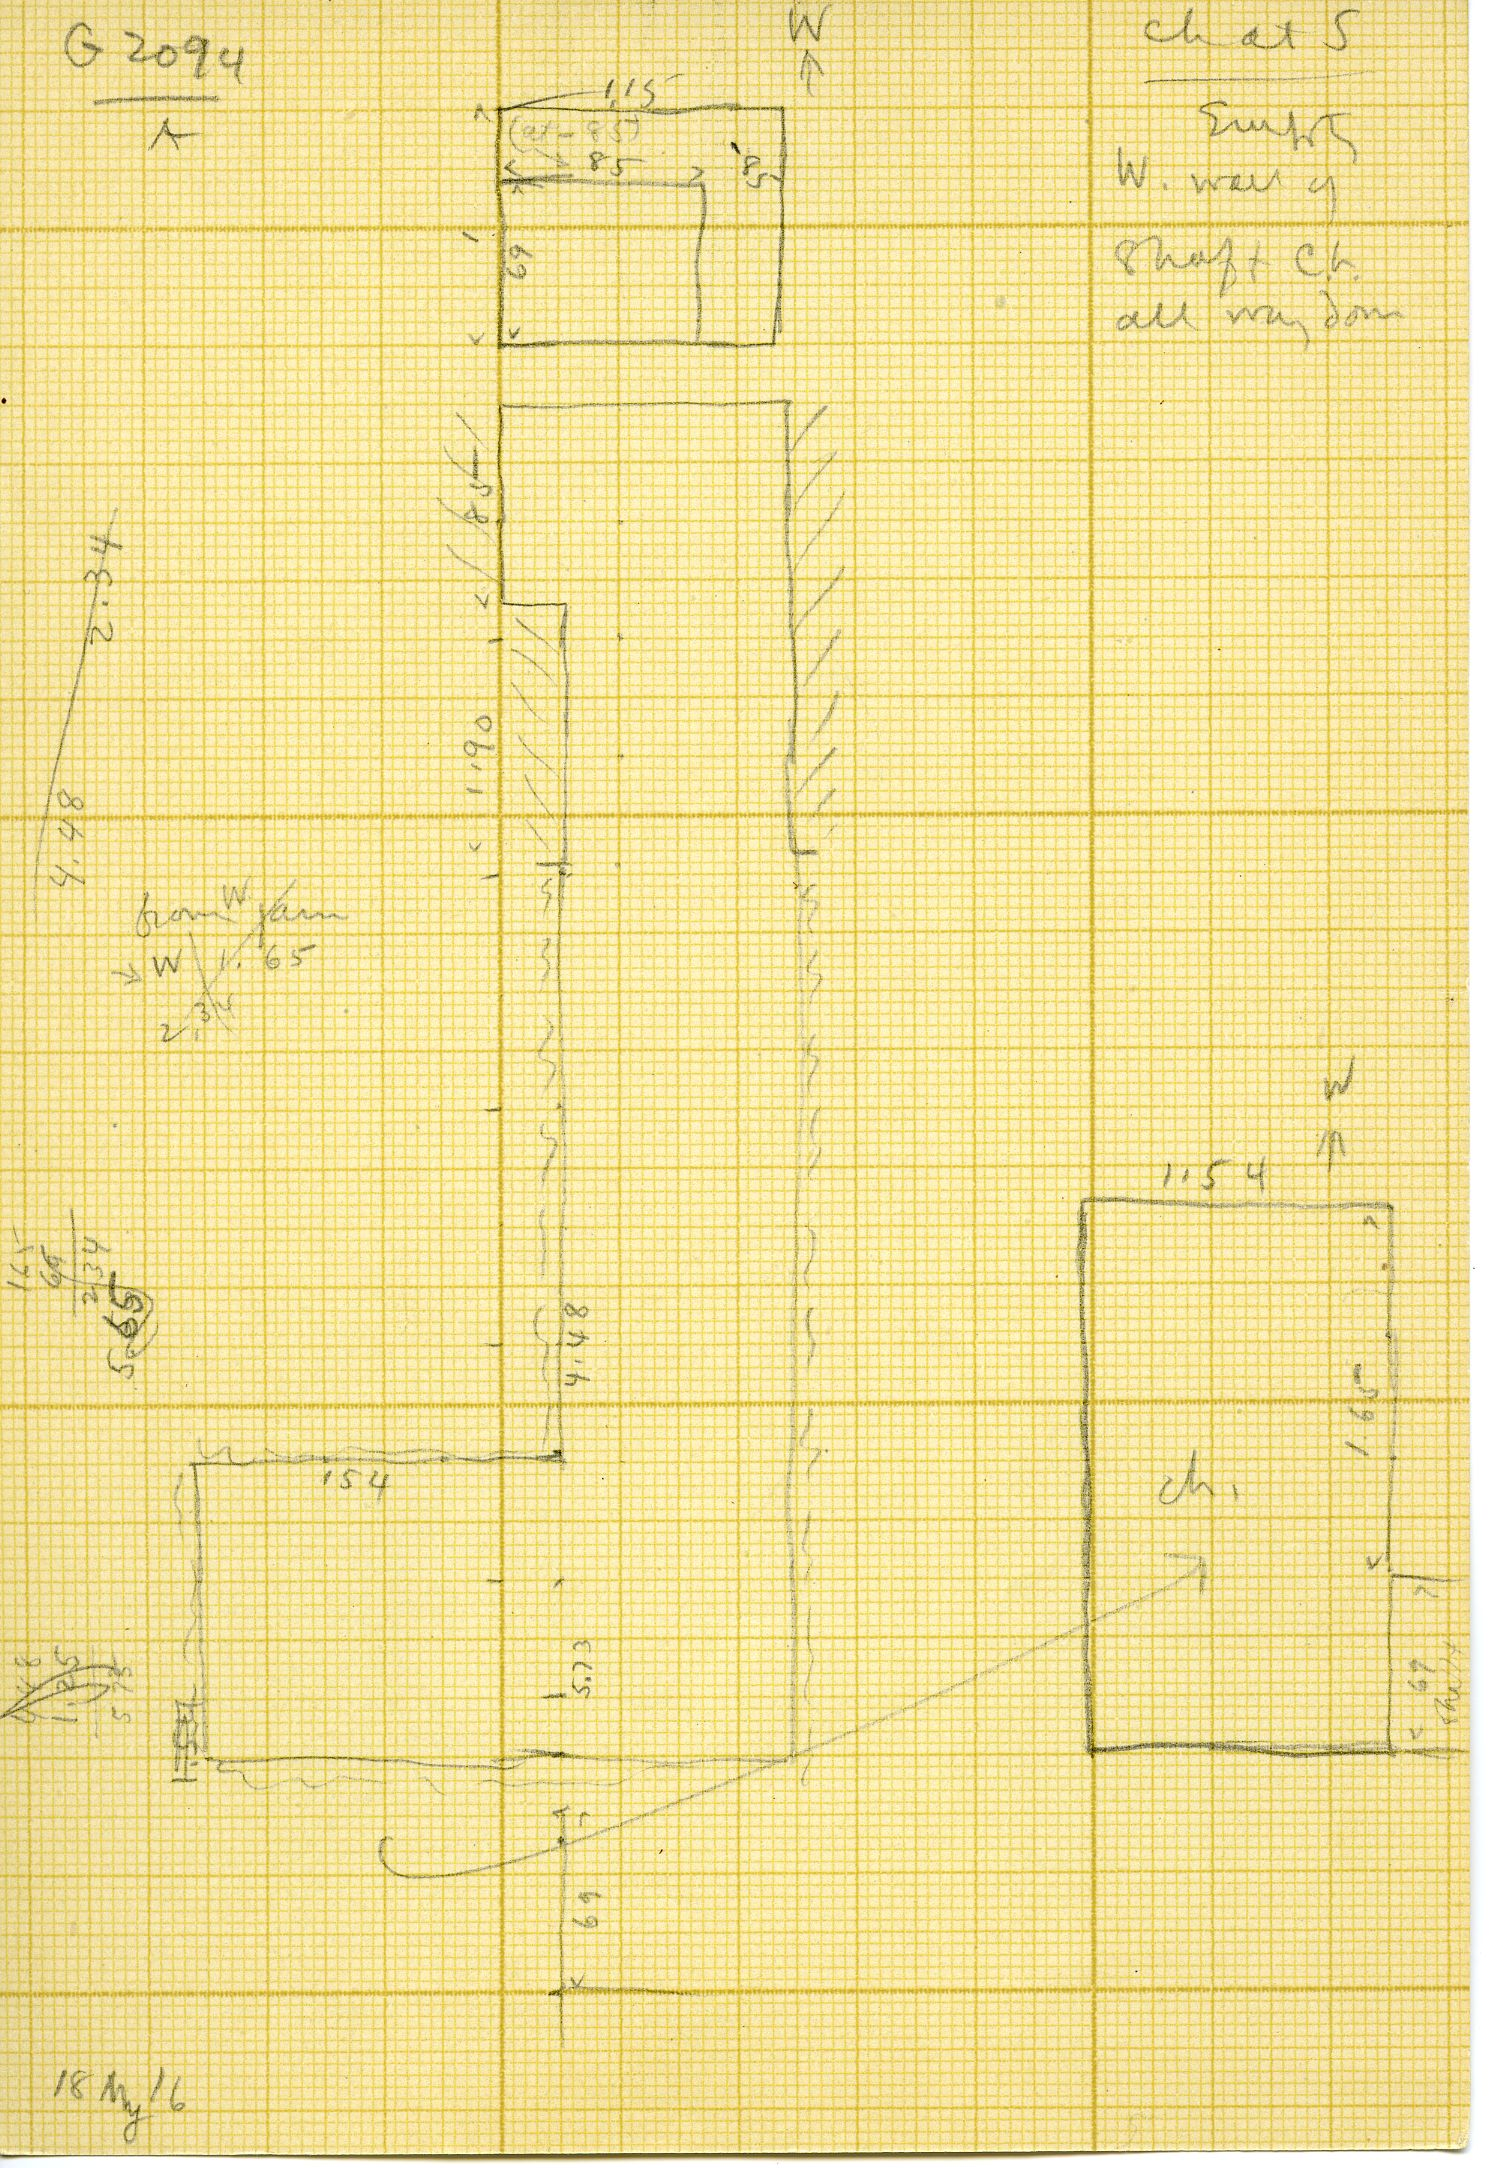 Maps and plans: G 3094, Shaft A